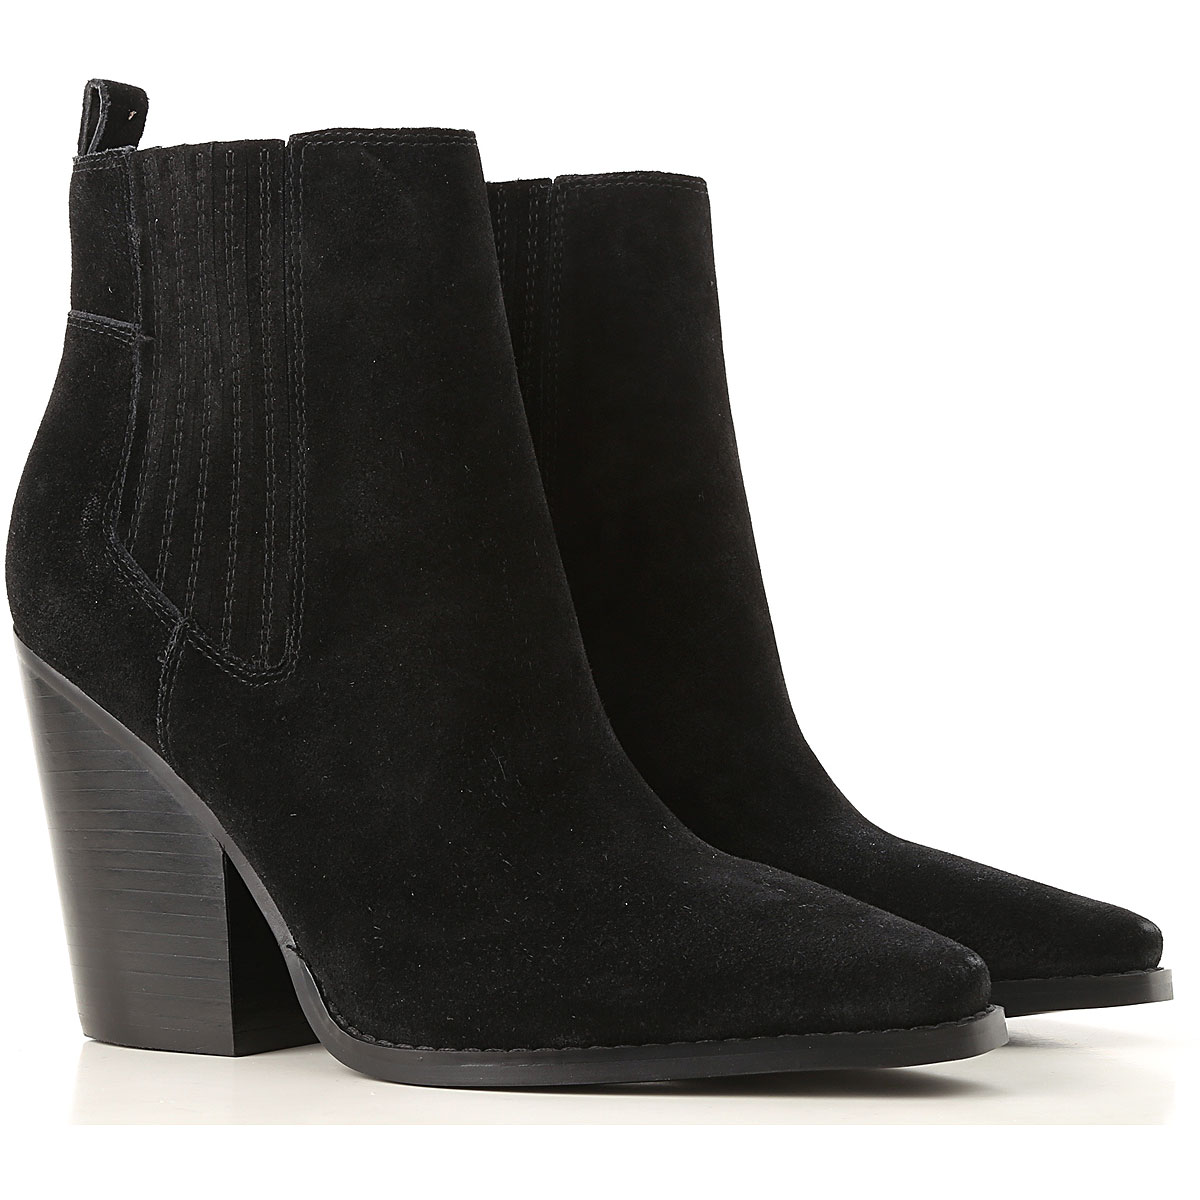 Image of Kendall Kylie Boots for Women, Booties, Black, Suede leather, 2017, 10 6.5 8 9.5